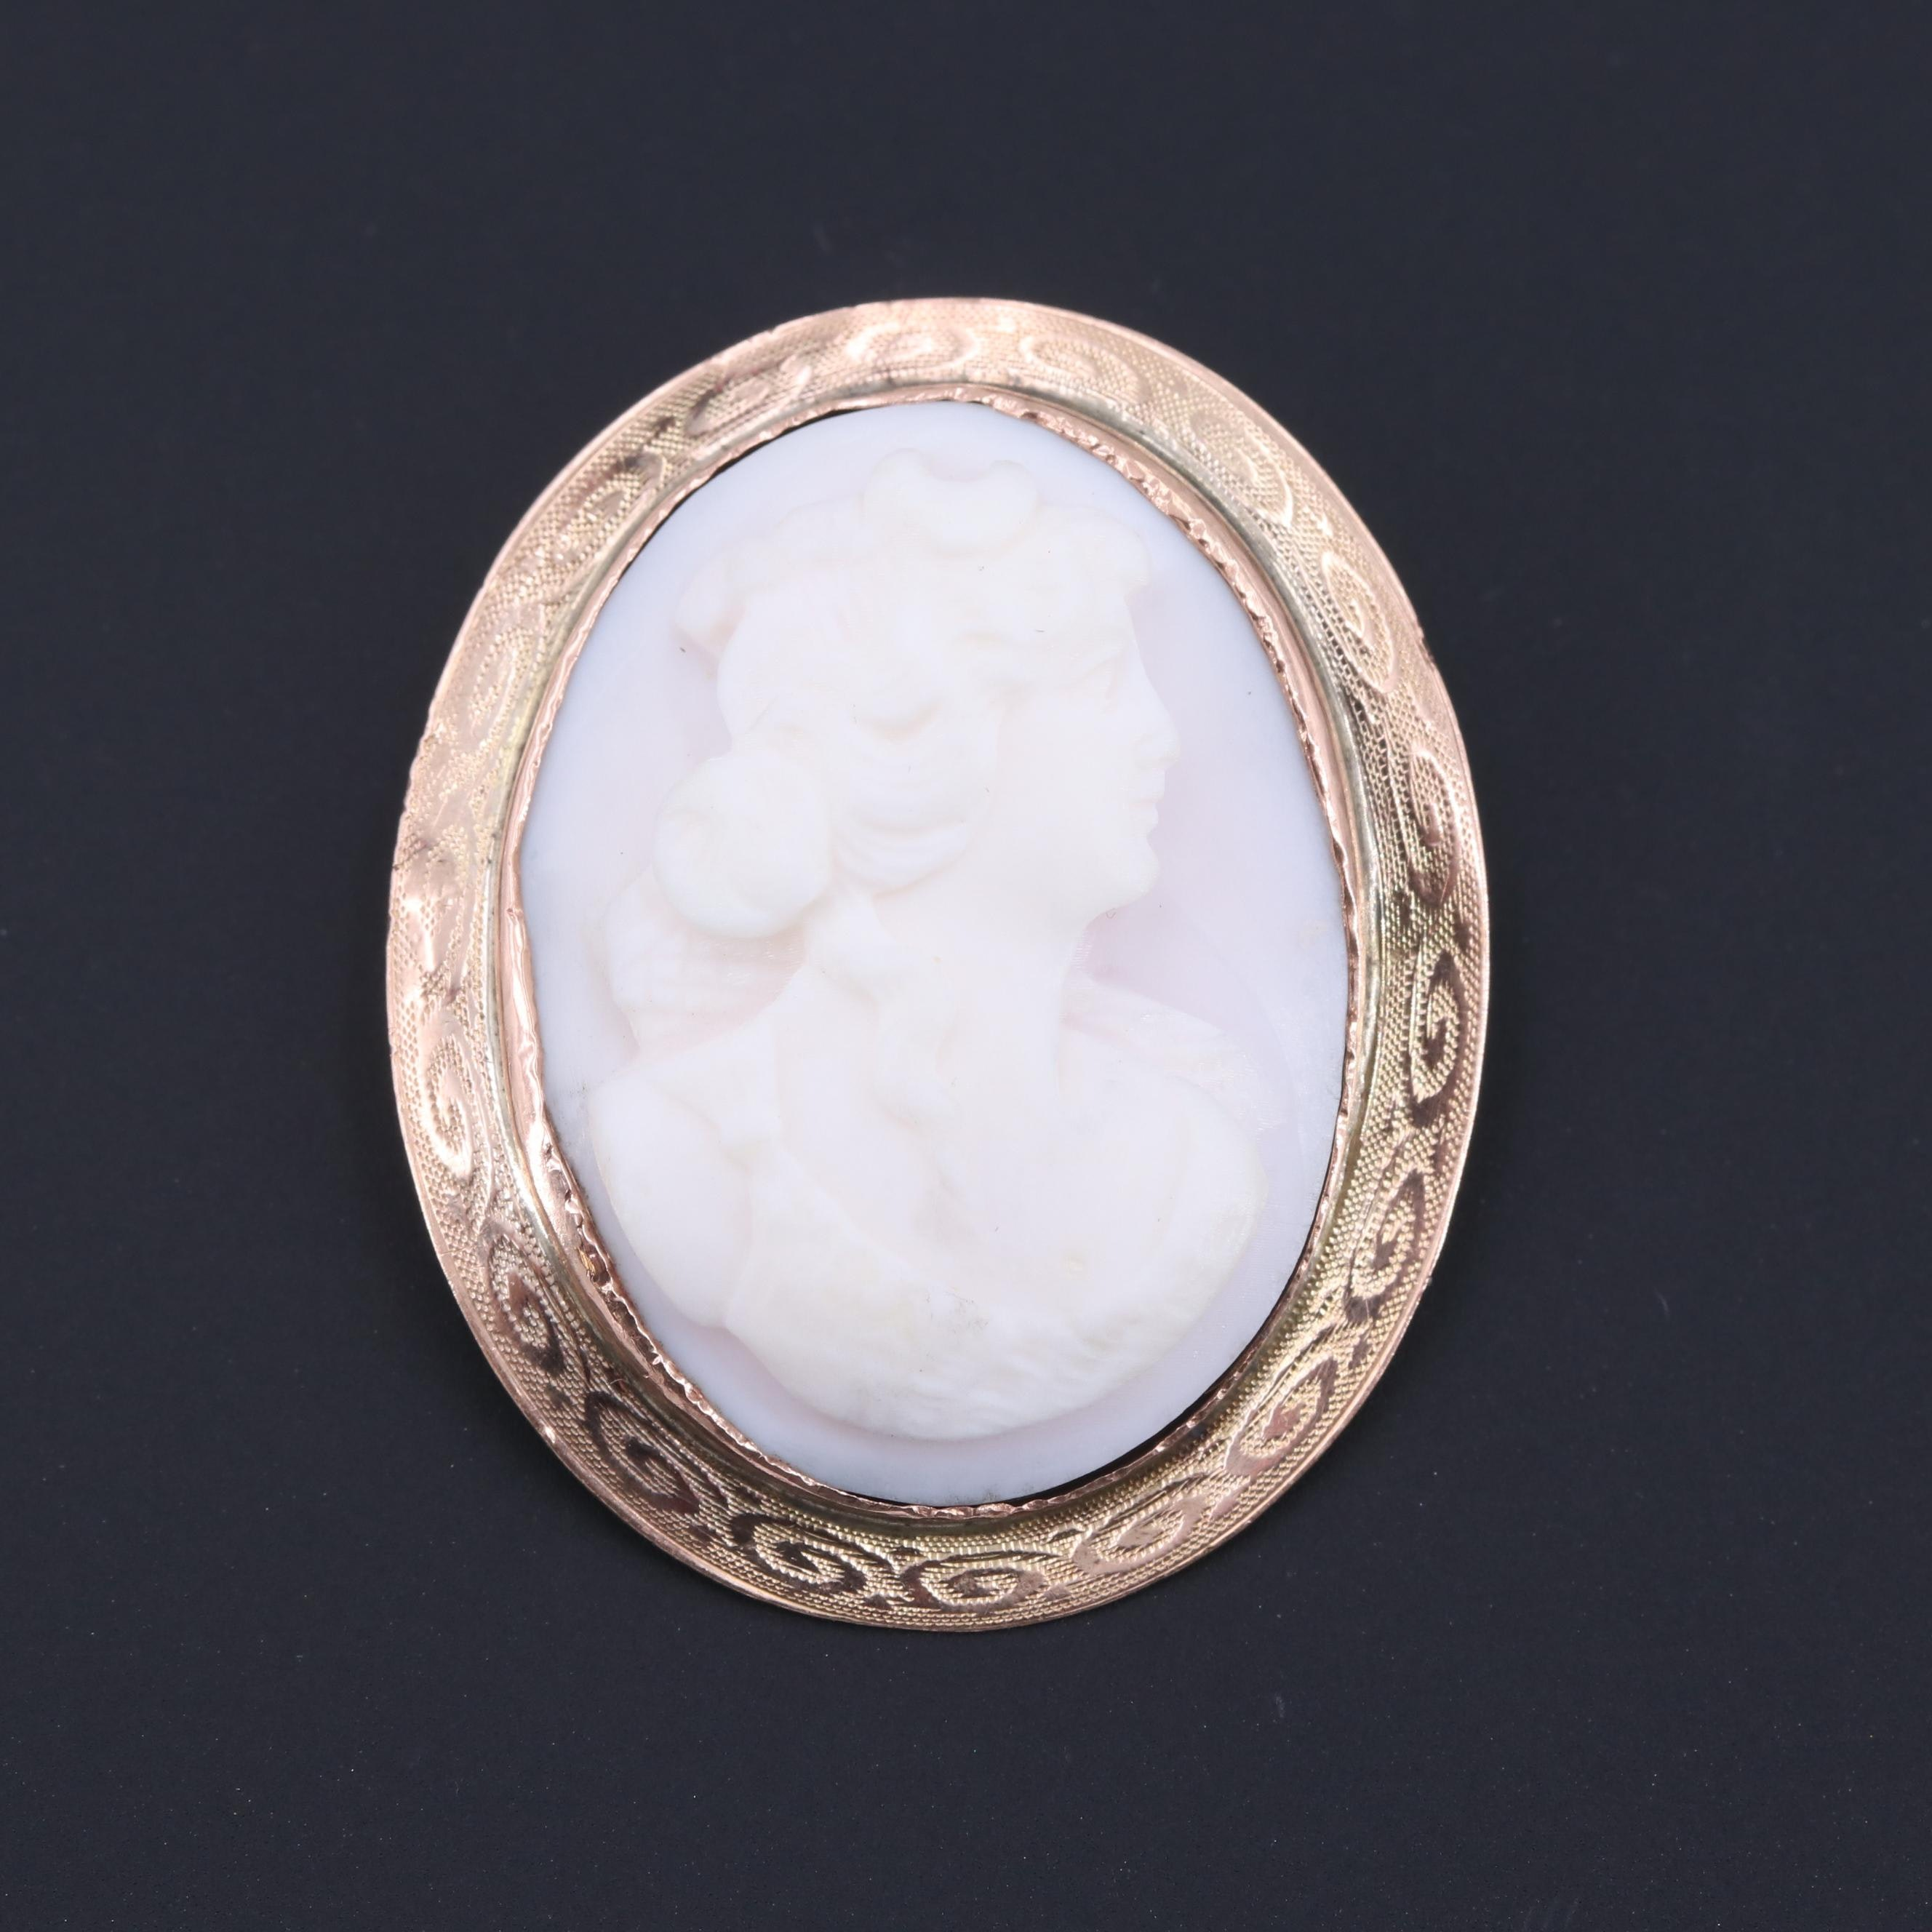 10K Yellow Gold Conch Shell Cameo Converter Brooch